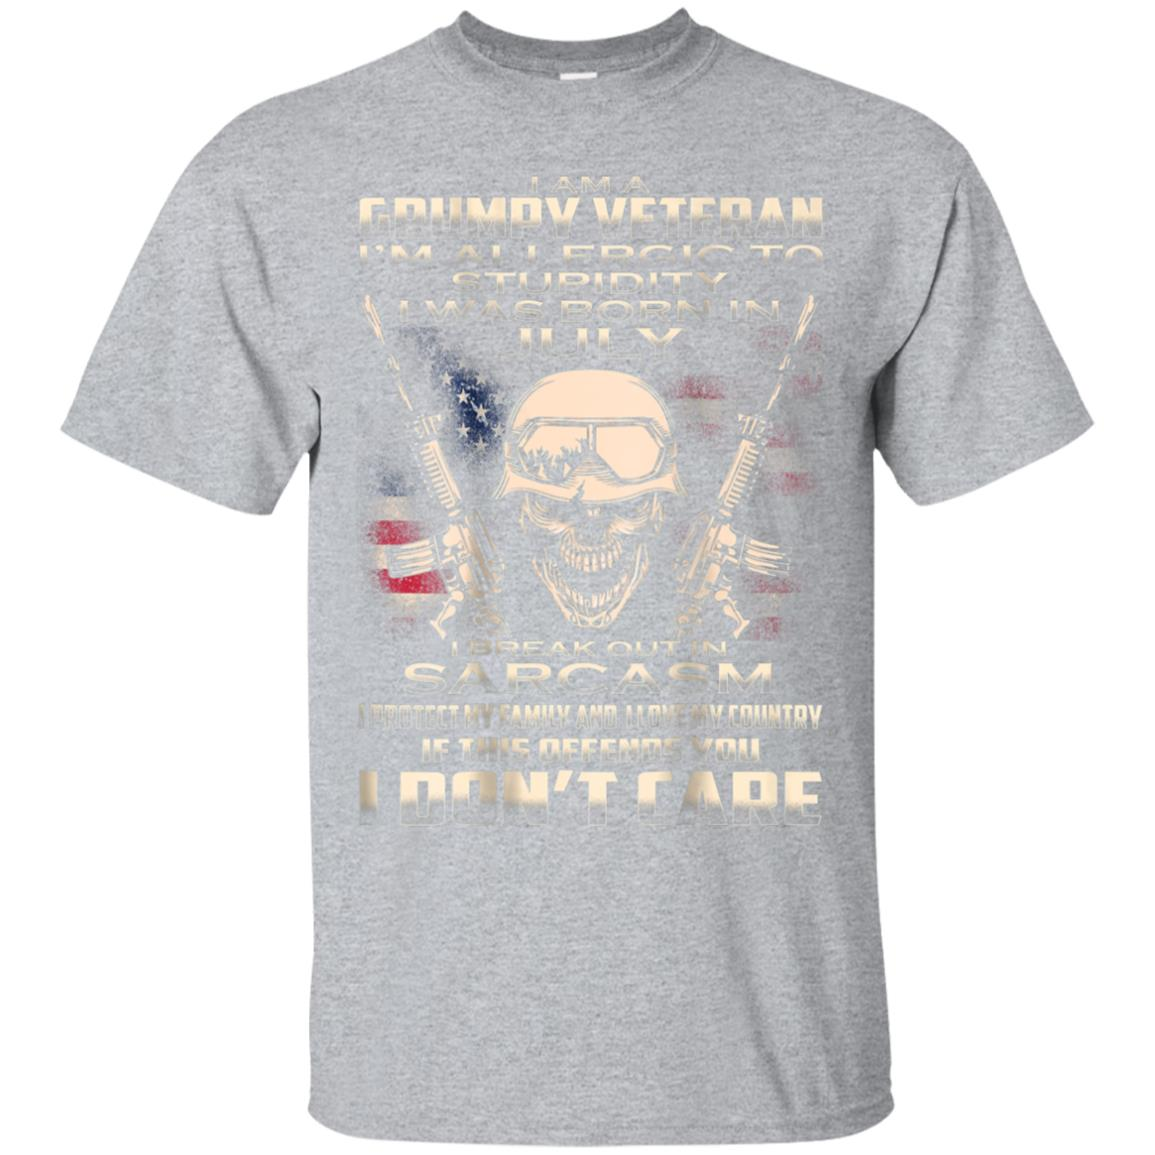 I'm A Grumpy Veteran born In July Tee Veteran's Day Gift 99promocode